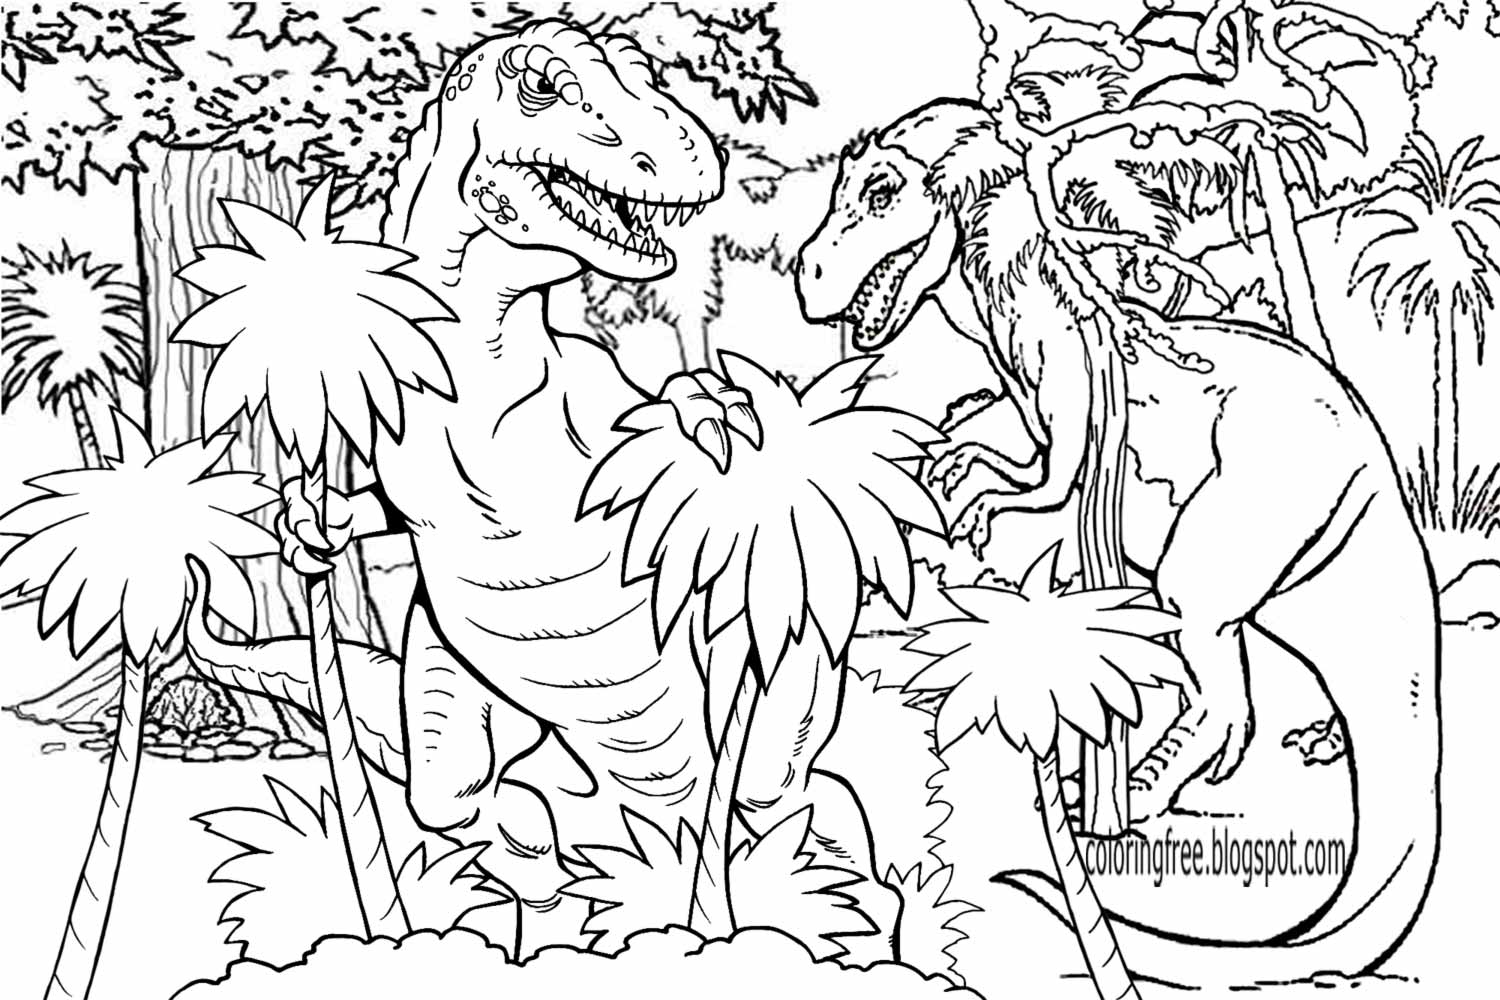 dinosaur to color lets coloring book prehistoric jurassic world dinosaurs dinosaur to color